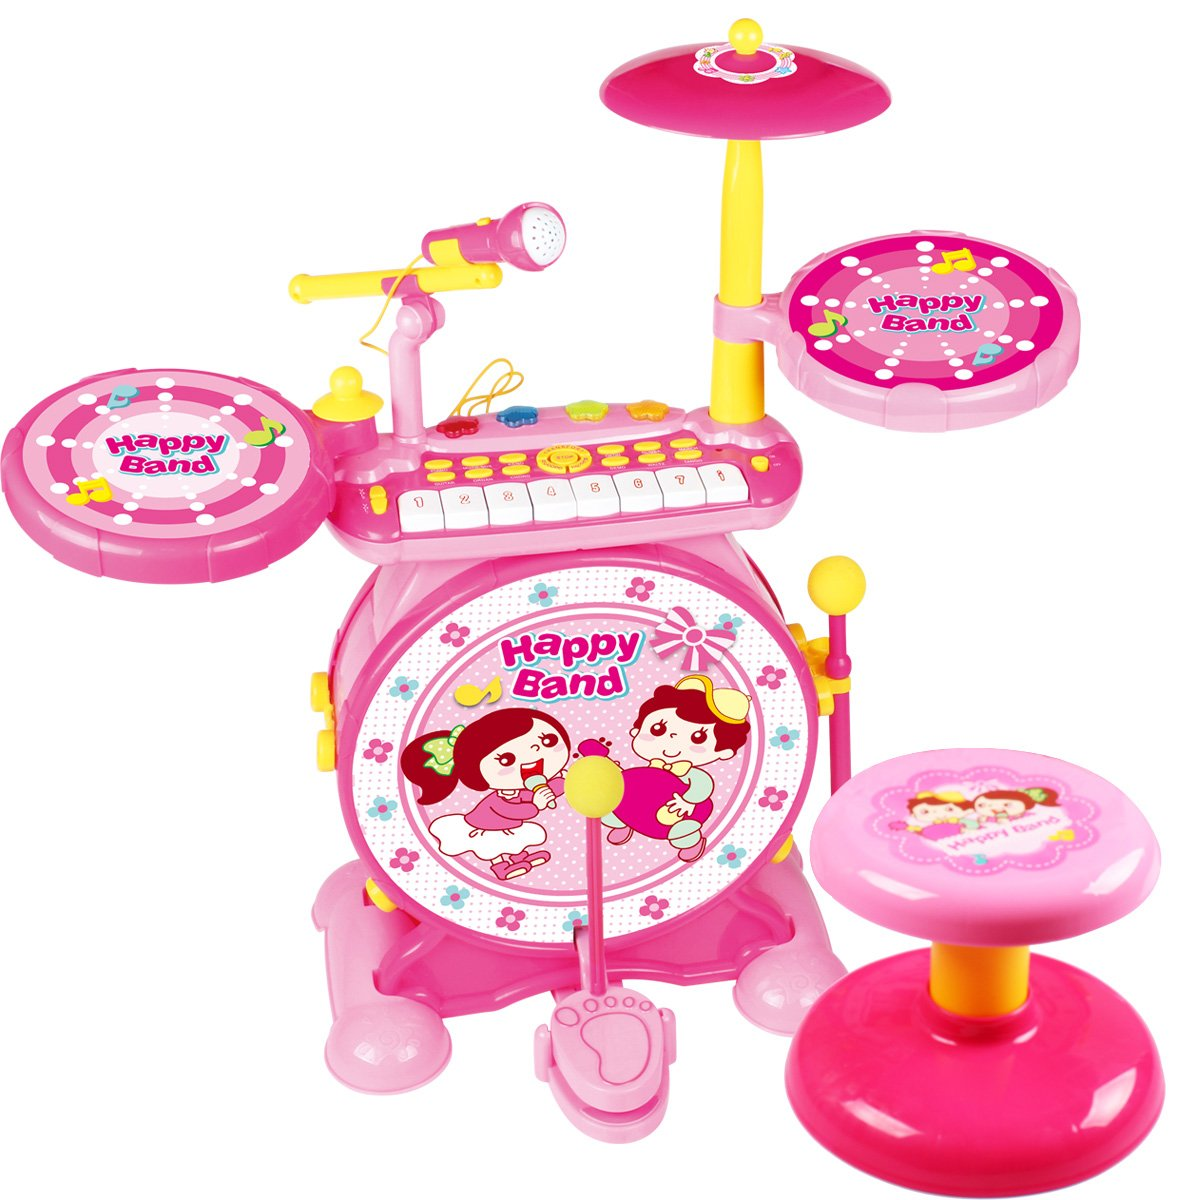 BAOLI 2-in-1 Children Musical Instrument Boy & Girl Electronic Rock Roll Jazz Drum Kit Set with Piano Keyboard and Microphone and Stool 24keys by BAOLI